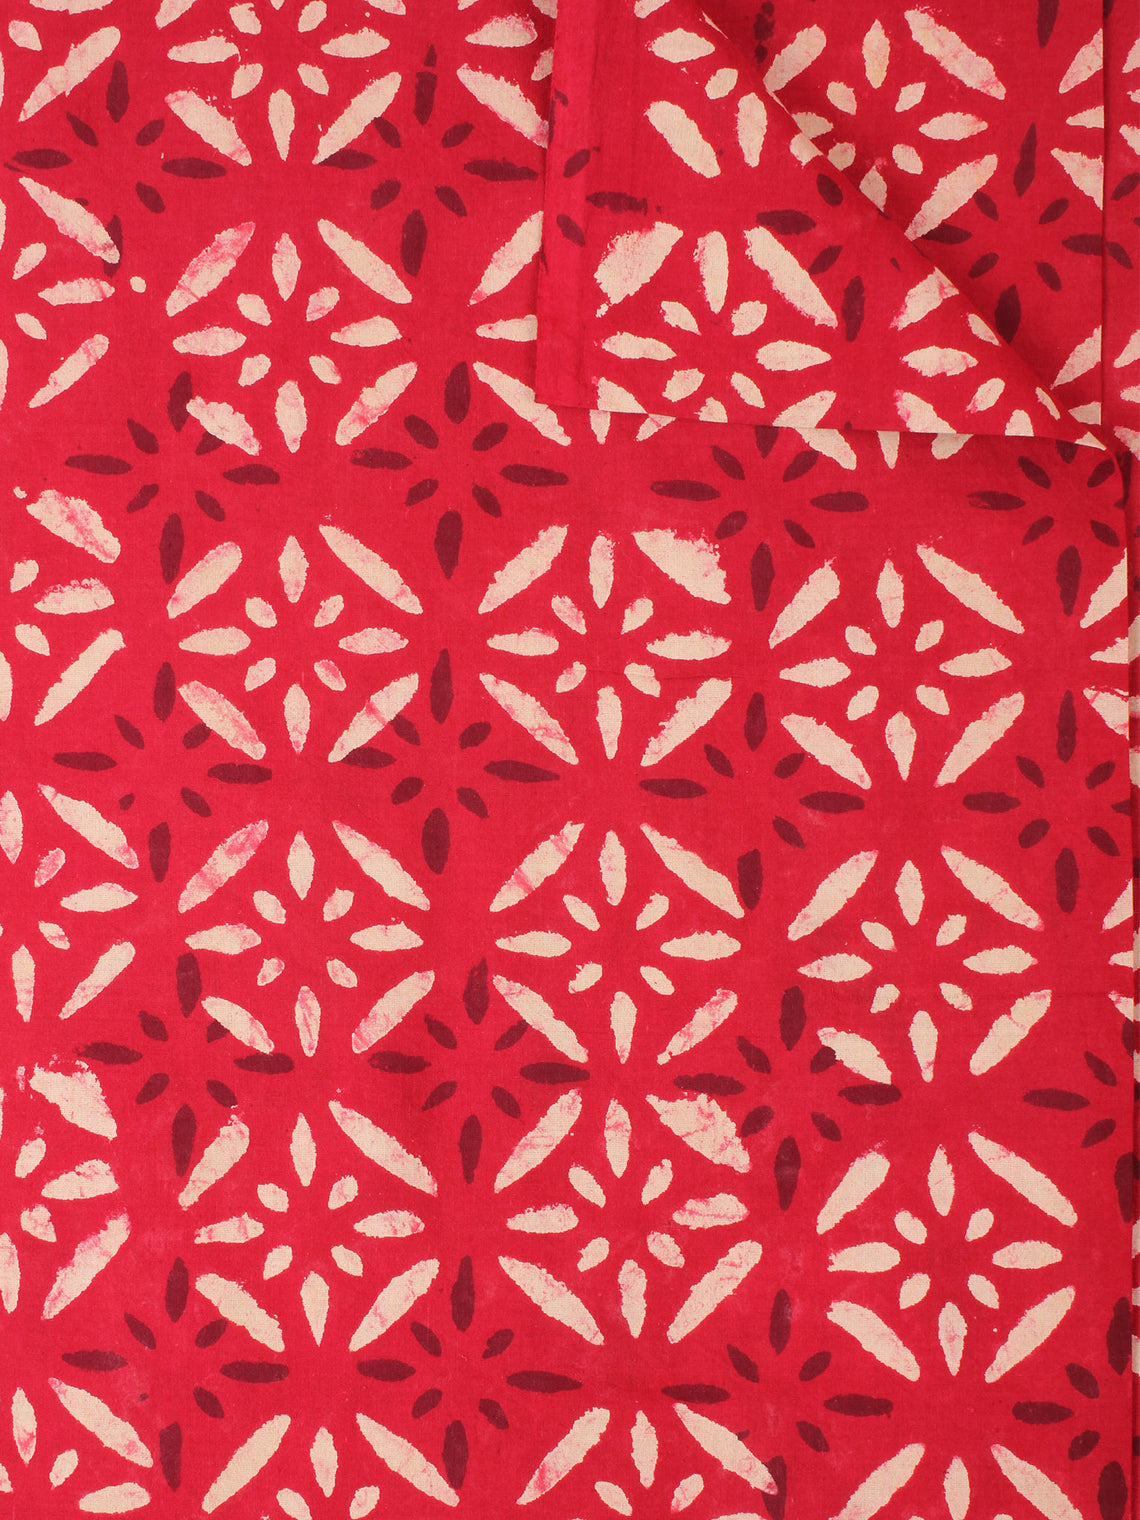 Red Beige Natural Dyed Hand Block Printed Cotton Fabric Per Meter - F0916225